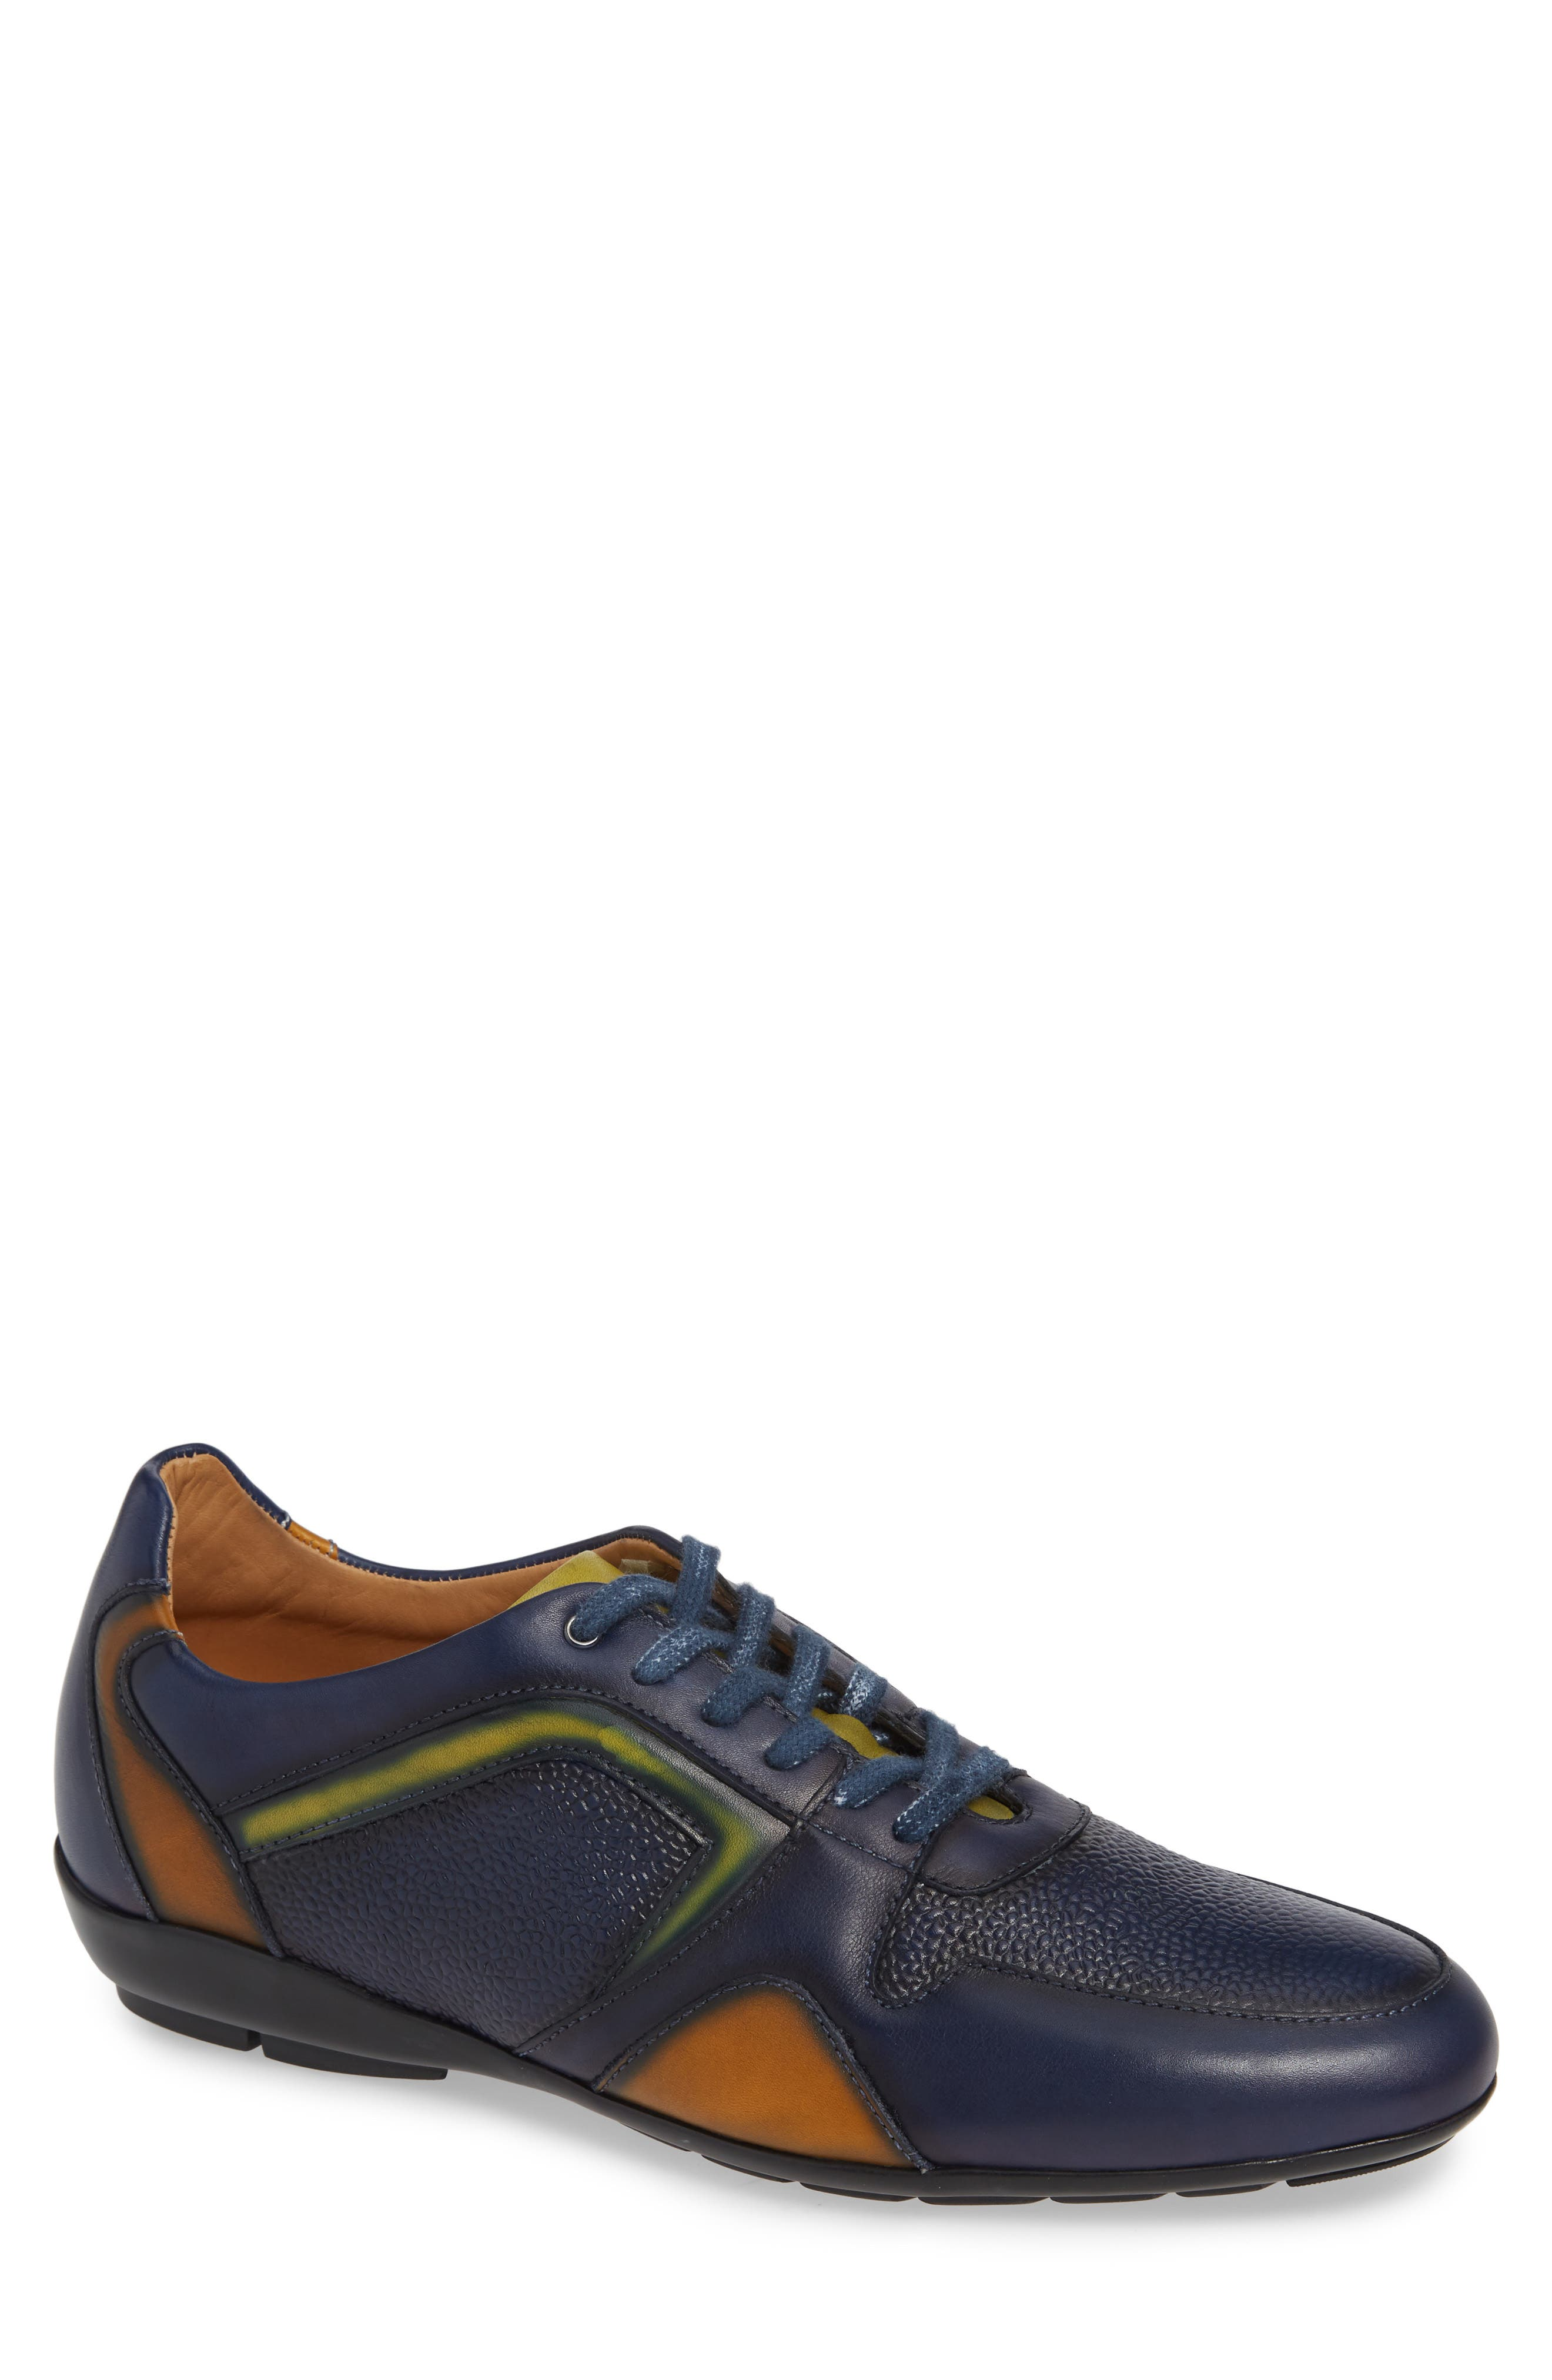 Campo Sneaker in Blue Leather